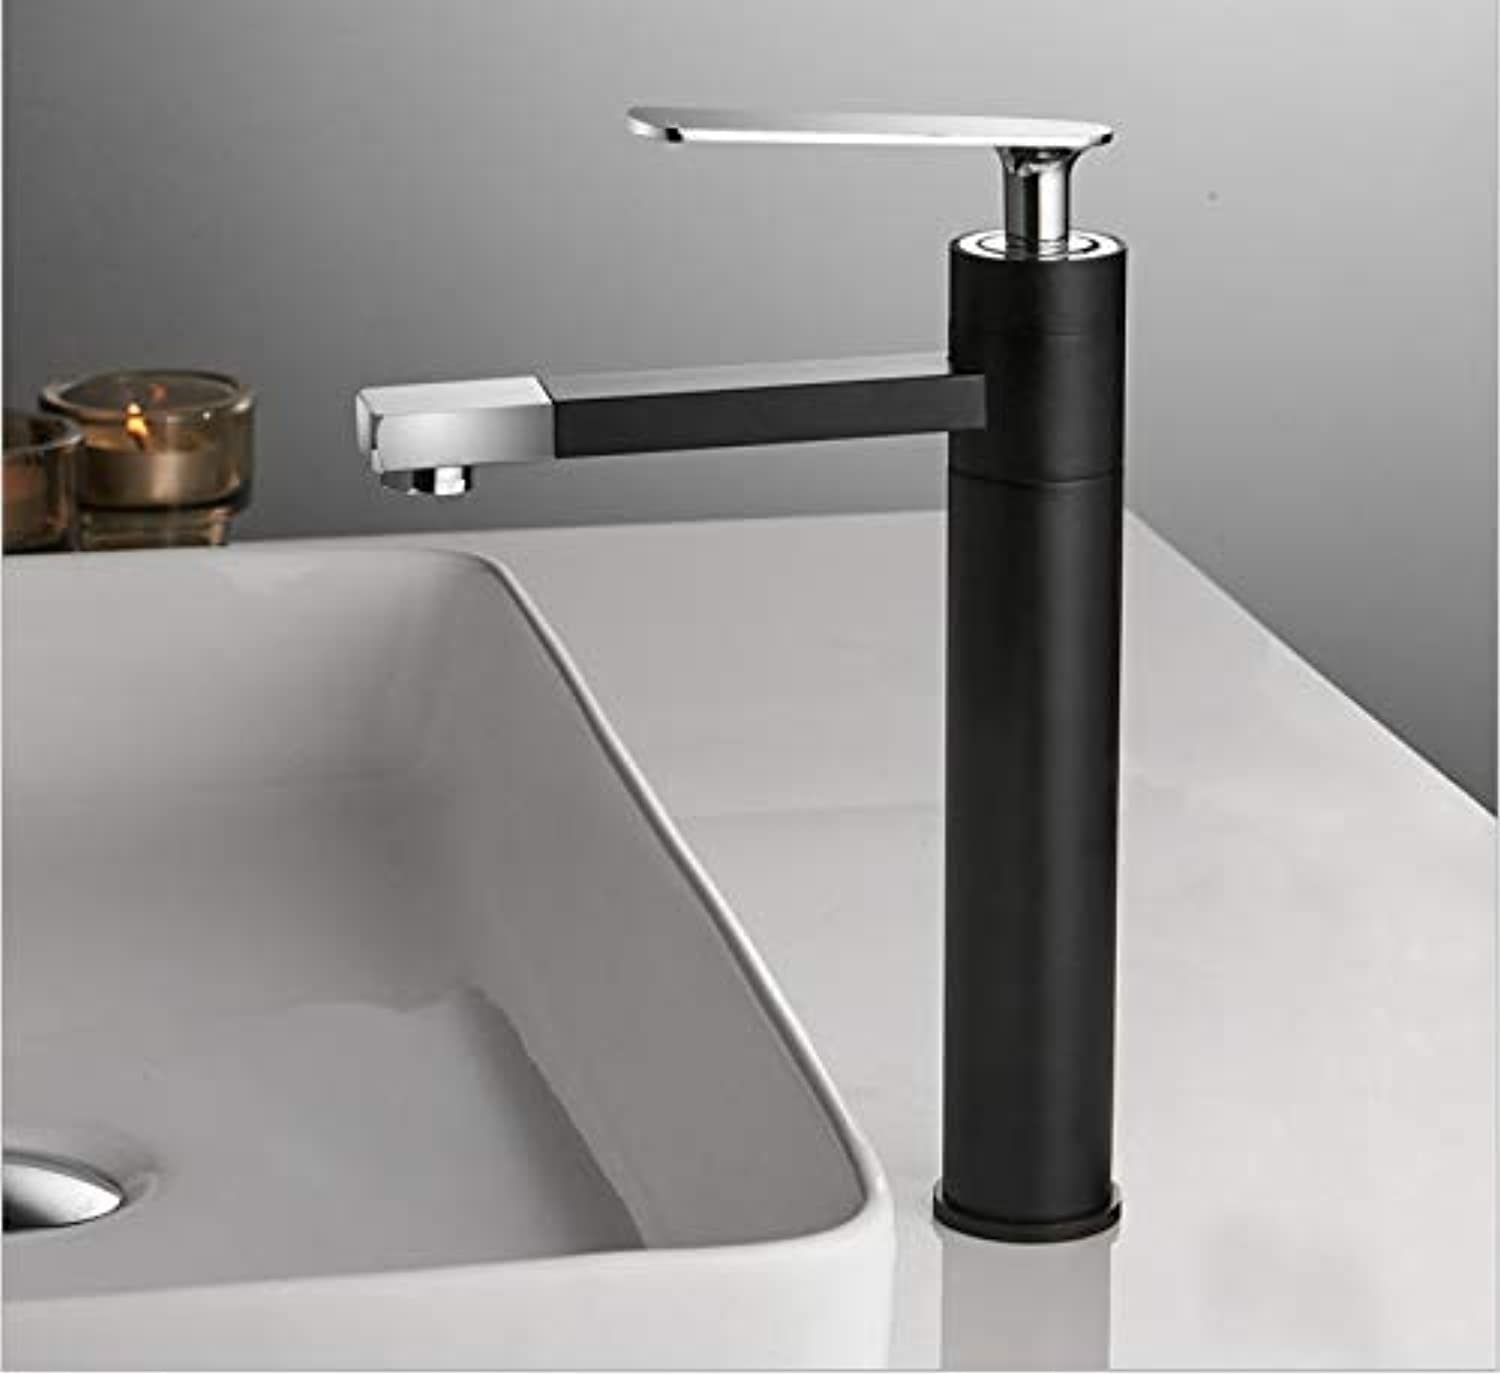 ROKTONG Taps Taps Taps Black Basin Hot And Cold Single Hole Faucet Copper Above Counter Basin Bathroom Sink Sink Faucet Can Be redated